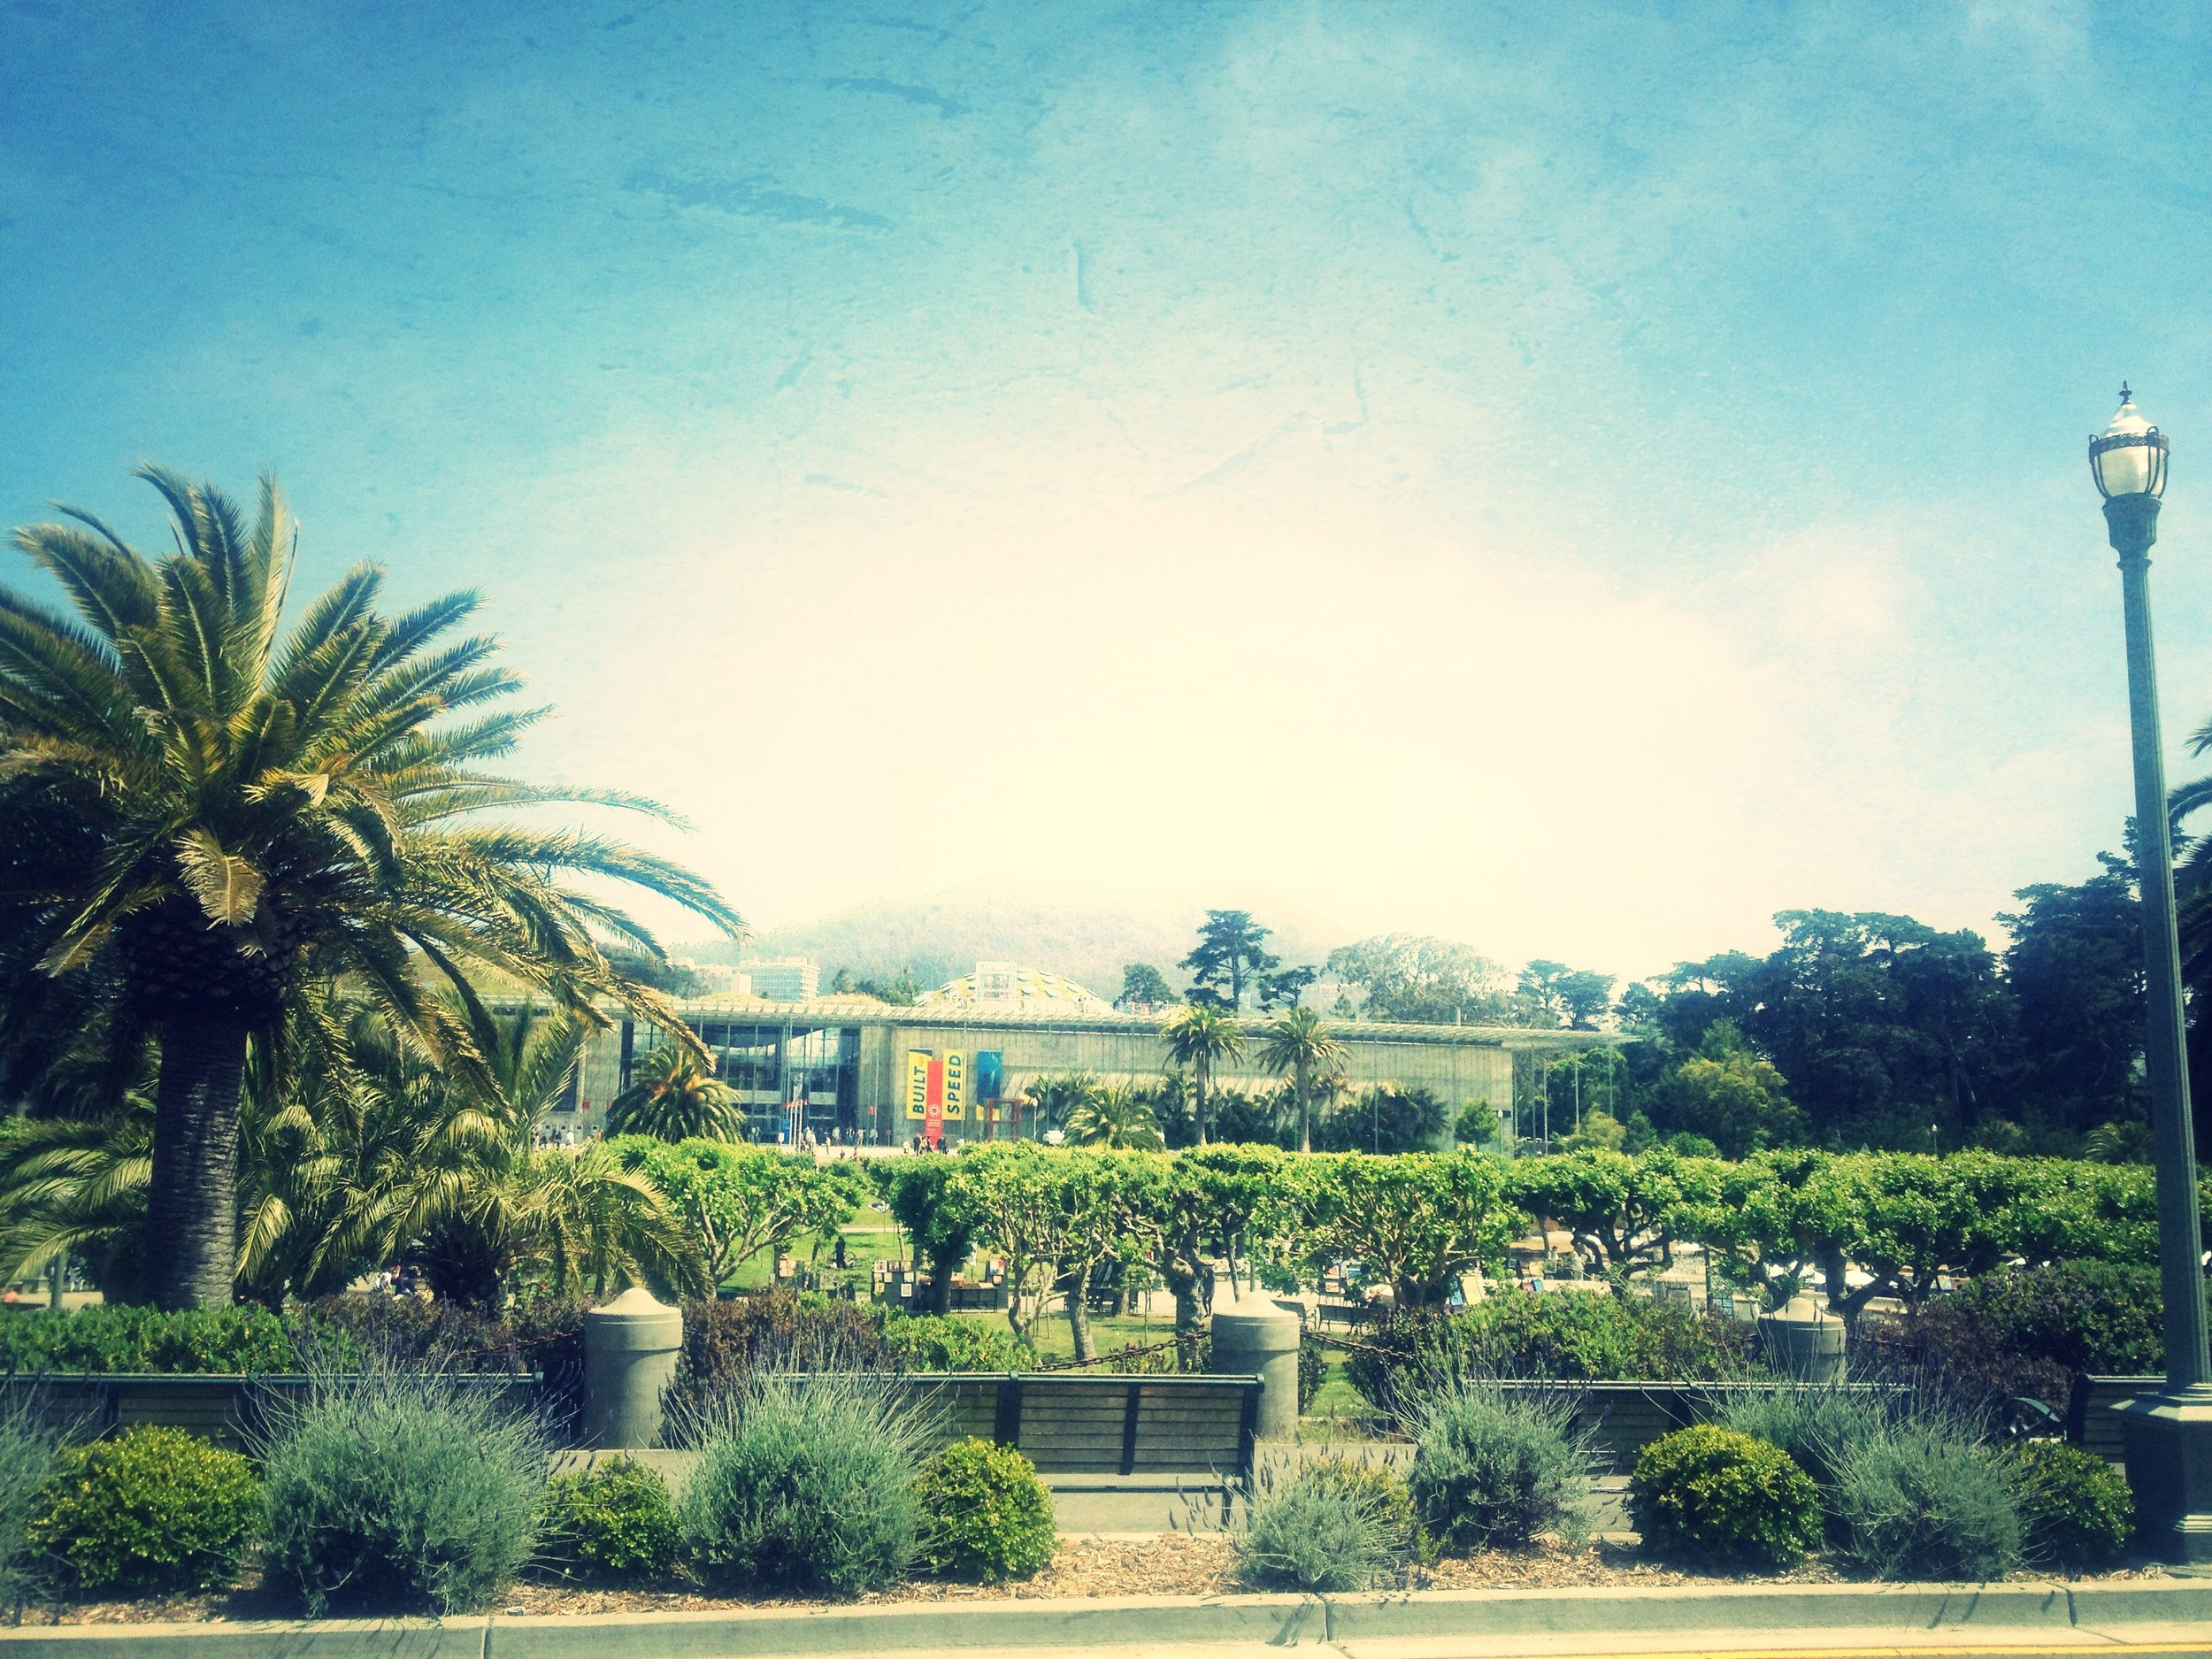 Beautiful day overlooking the Academy of Sciences.